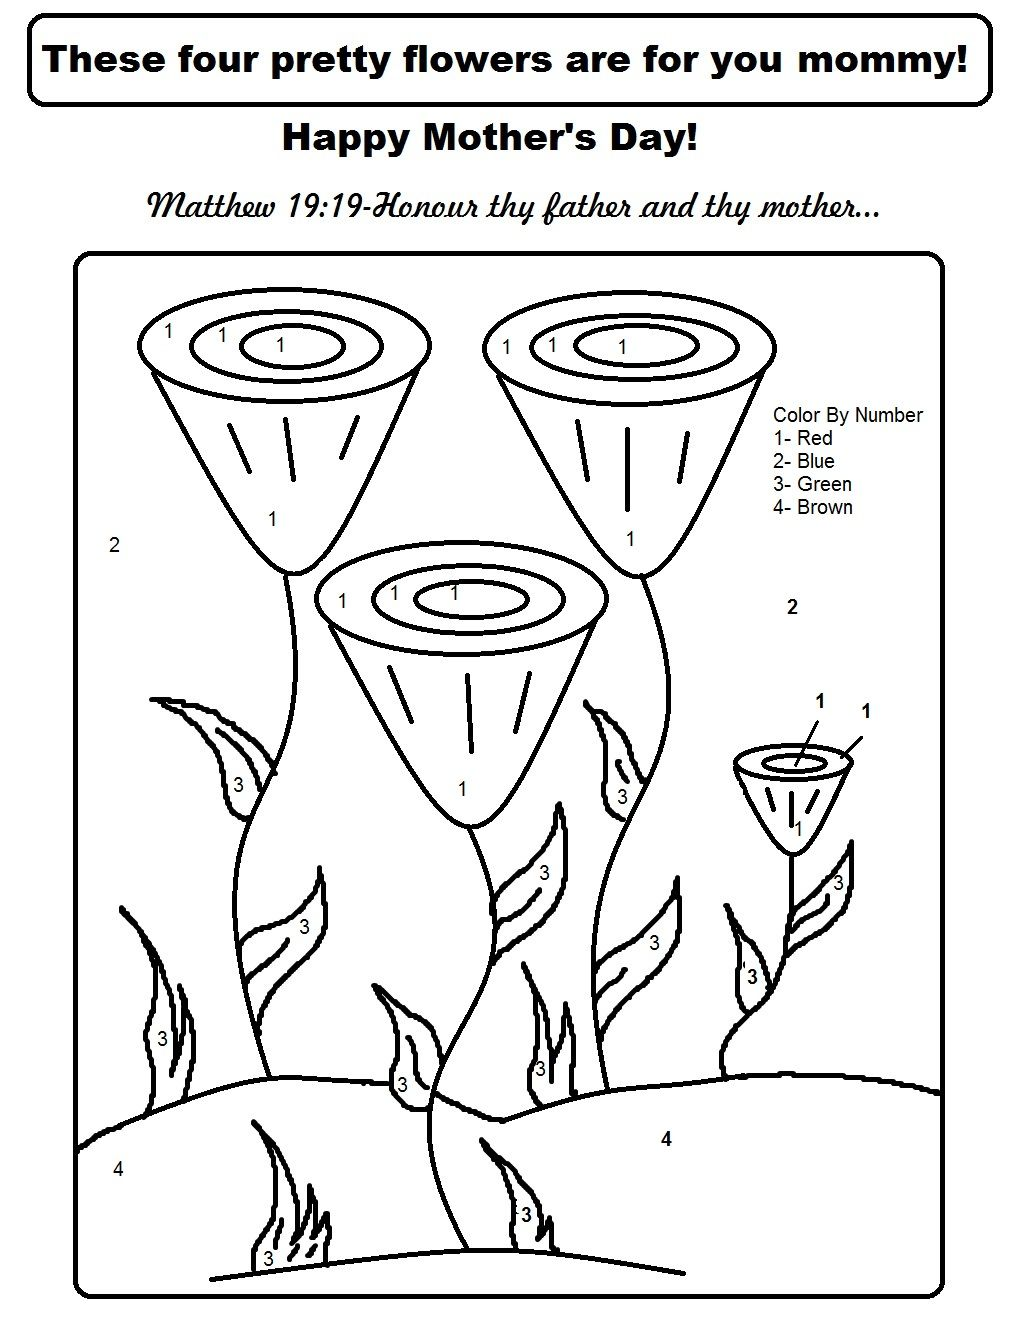 Mothers day coloring sheets for sunday school - Mother S Day Color By Number Jpg 1 019 1 319 Pixels